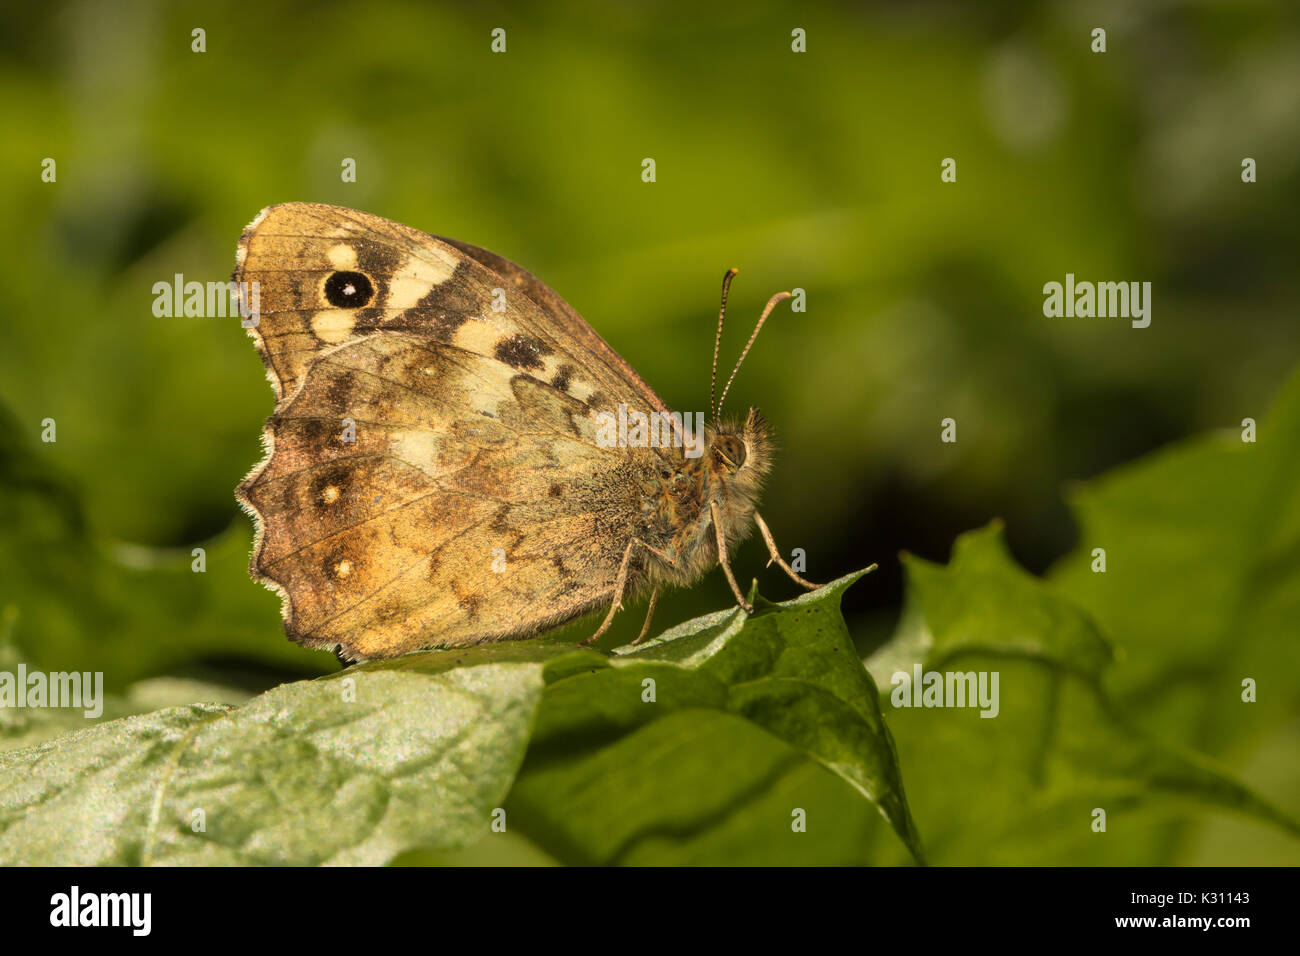 Speckled Wood butterfly (Pararge aegeria) perched on leaf, Cambridgeshire, England - Stock Image